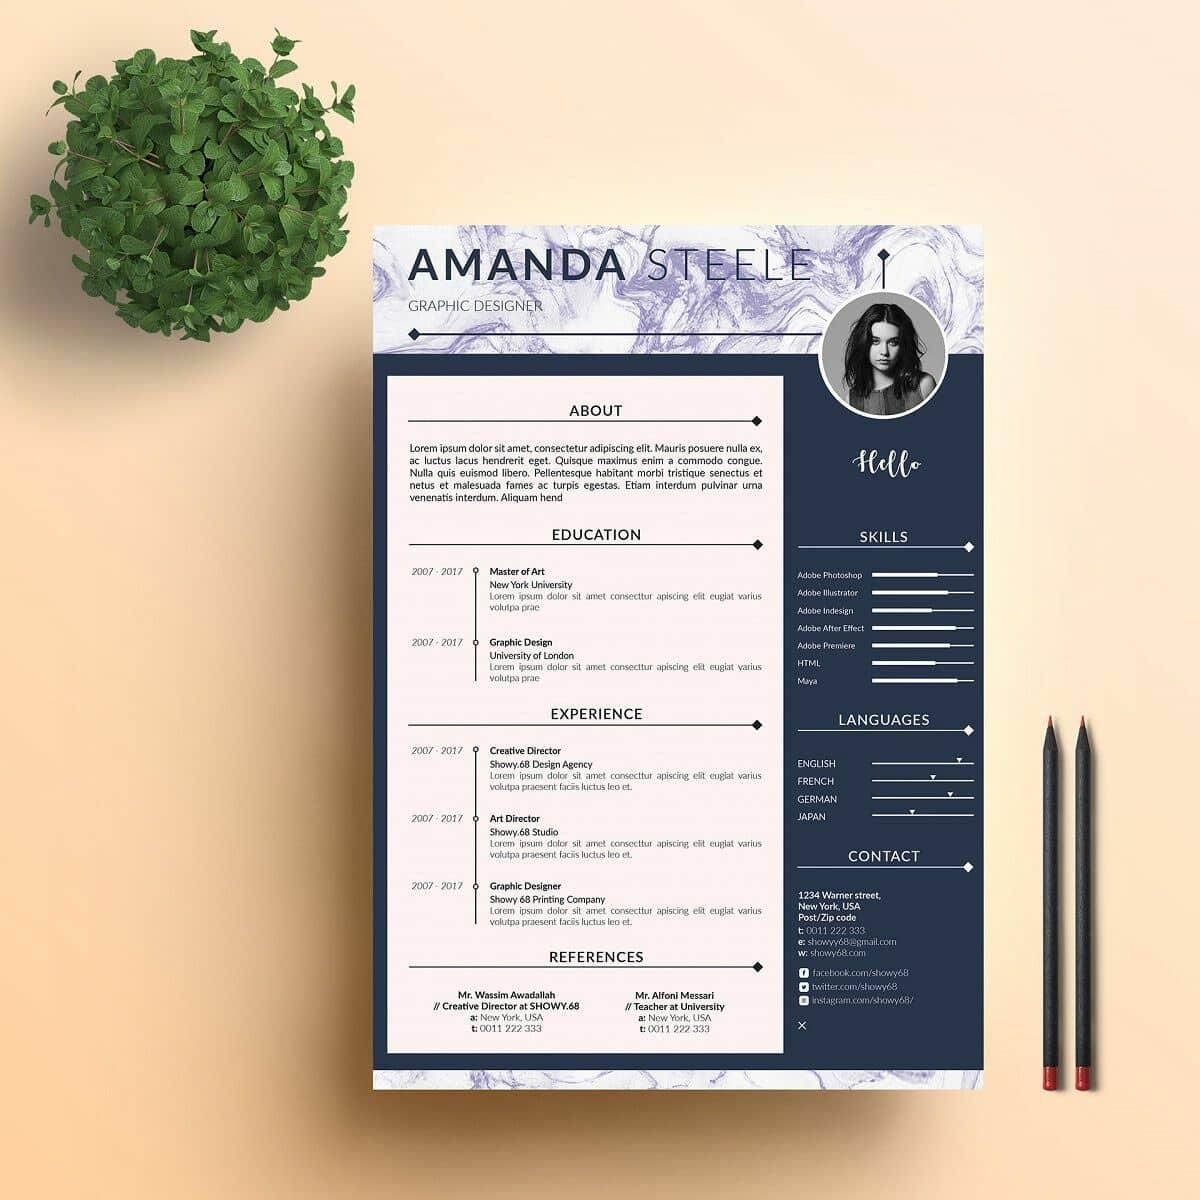 The Marble Simple Resume Template Cv Template Letterhead By Do Anh Nguyet Is Just As Descri Modern Resume Template Resume Design Template Resume Templates